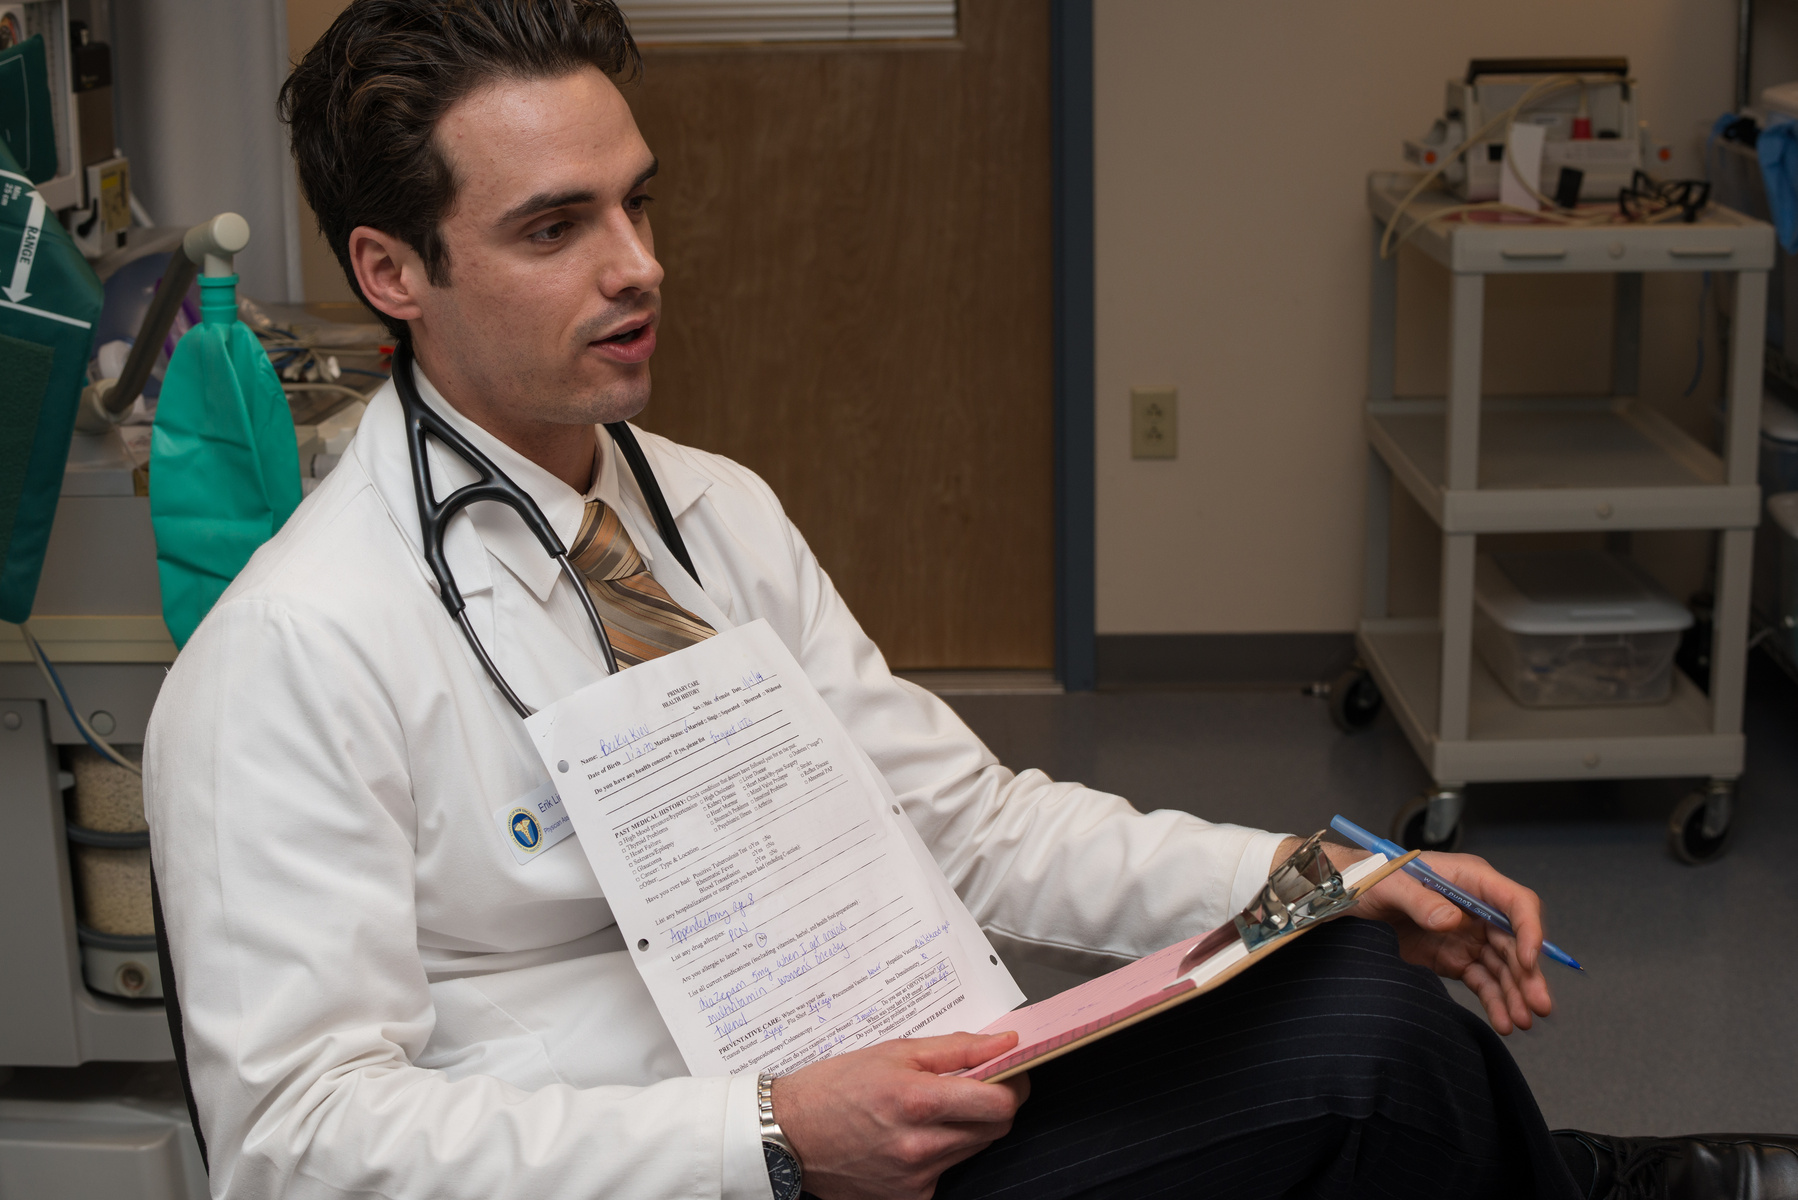 A U N E physician assistant student sits in a hospital room reviewing a patient's chart